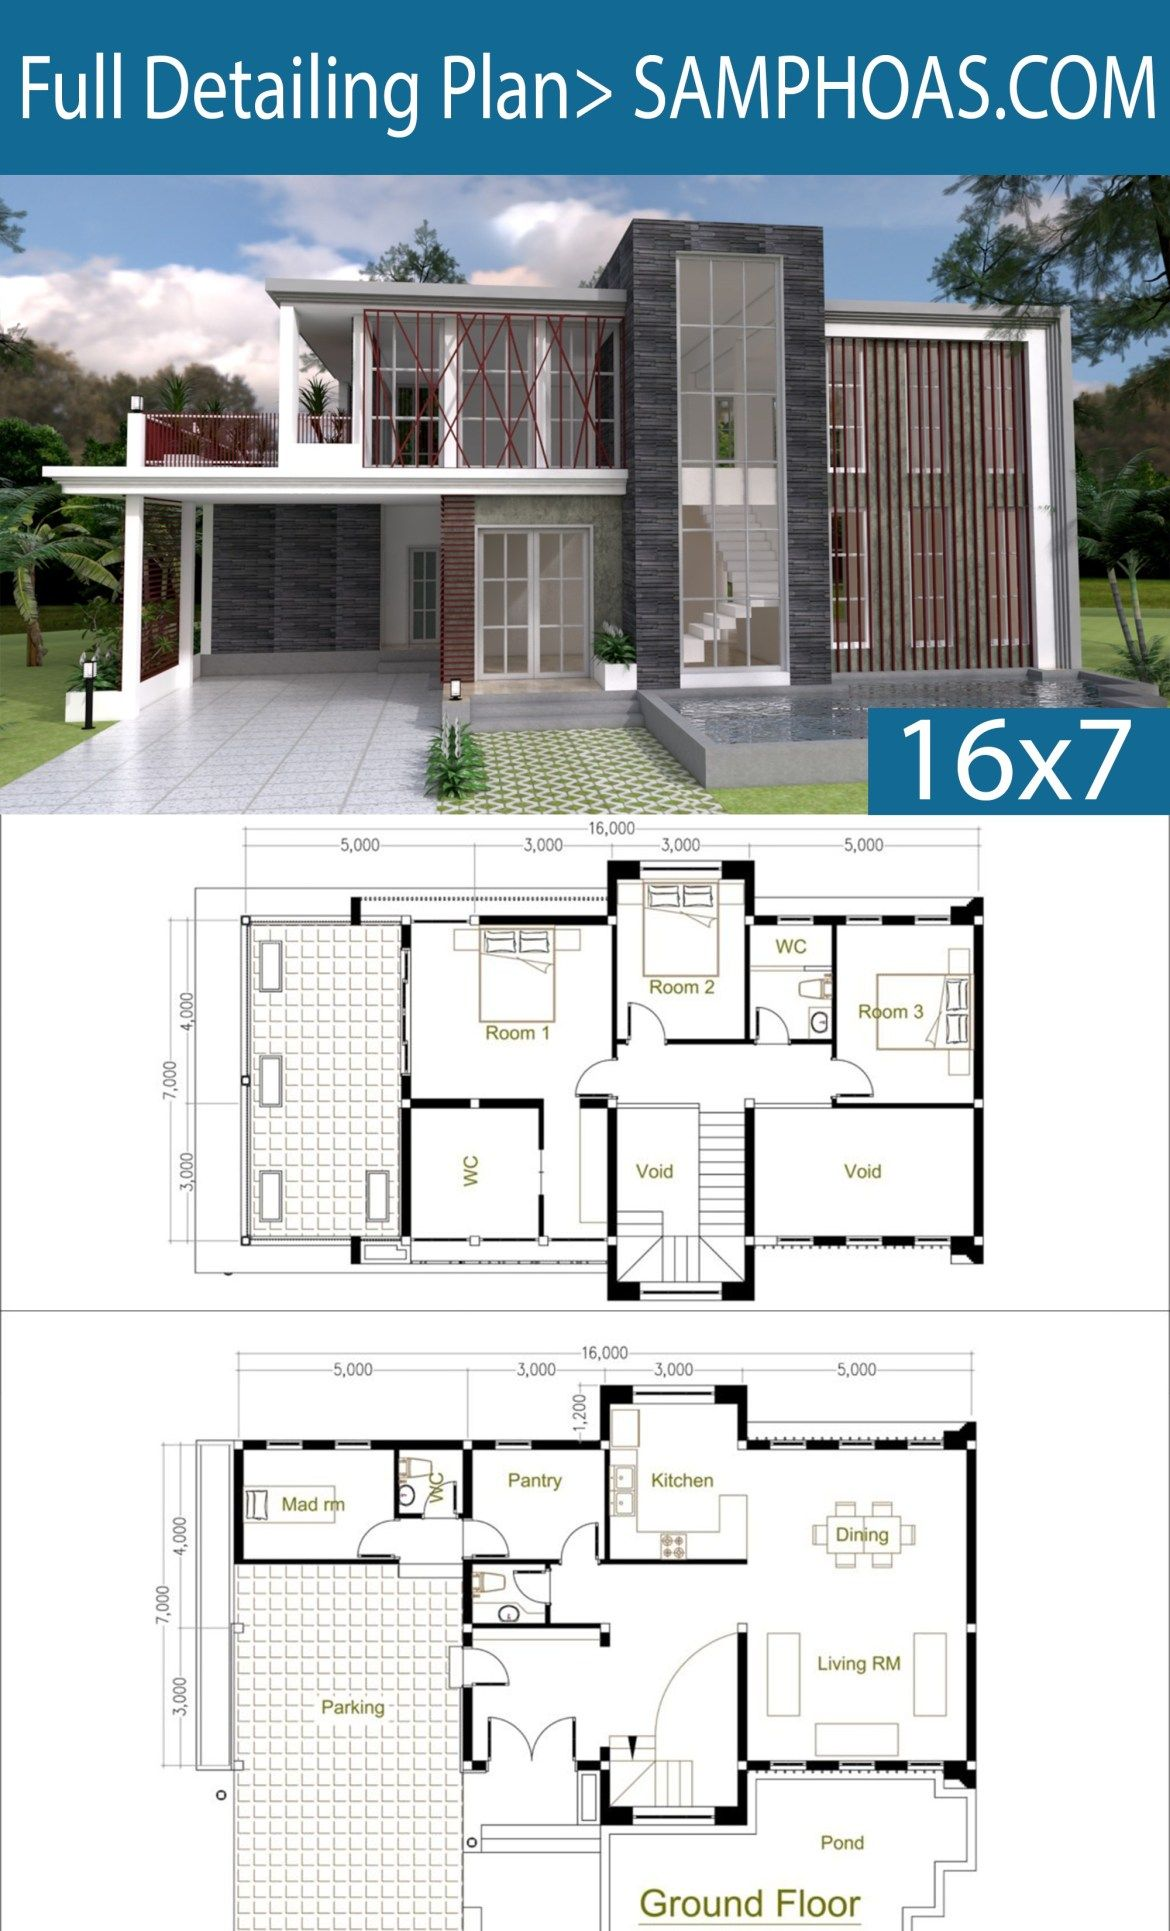 3 Bedrooms Modern Home Plan 7x16m Samphoas Plansearch Big Modern Houses Modern House Floor Plans Modern House Plans